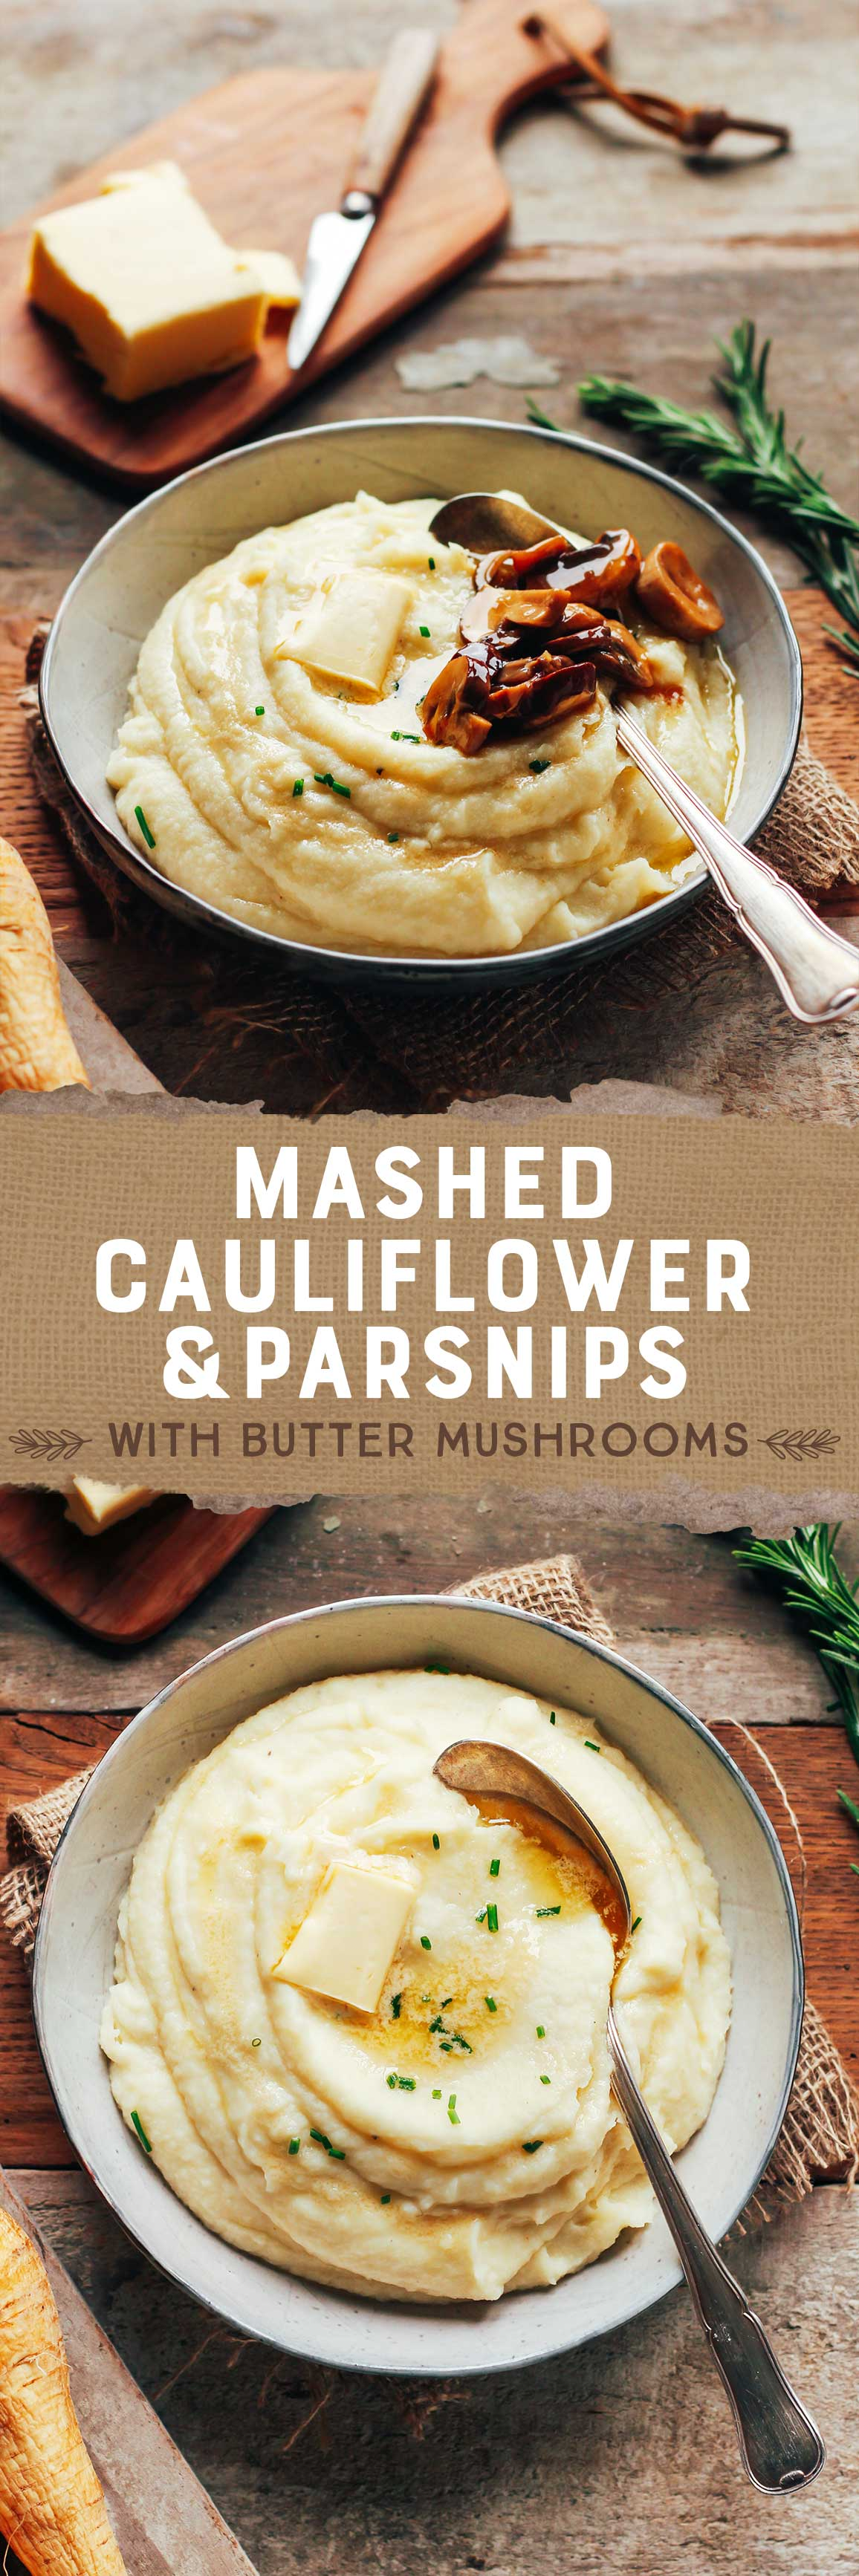 Mashed Cauliflower & Parsnips with Garlic Butter Mushrooms